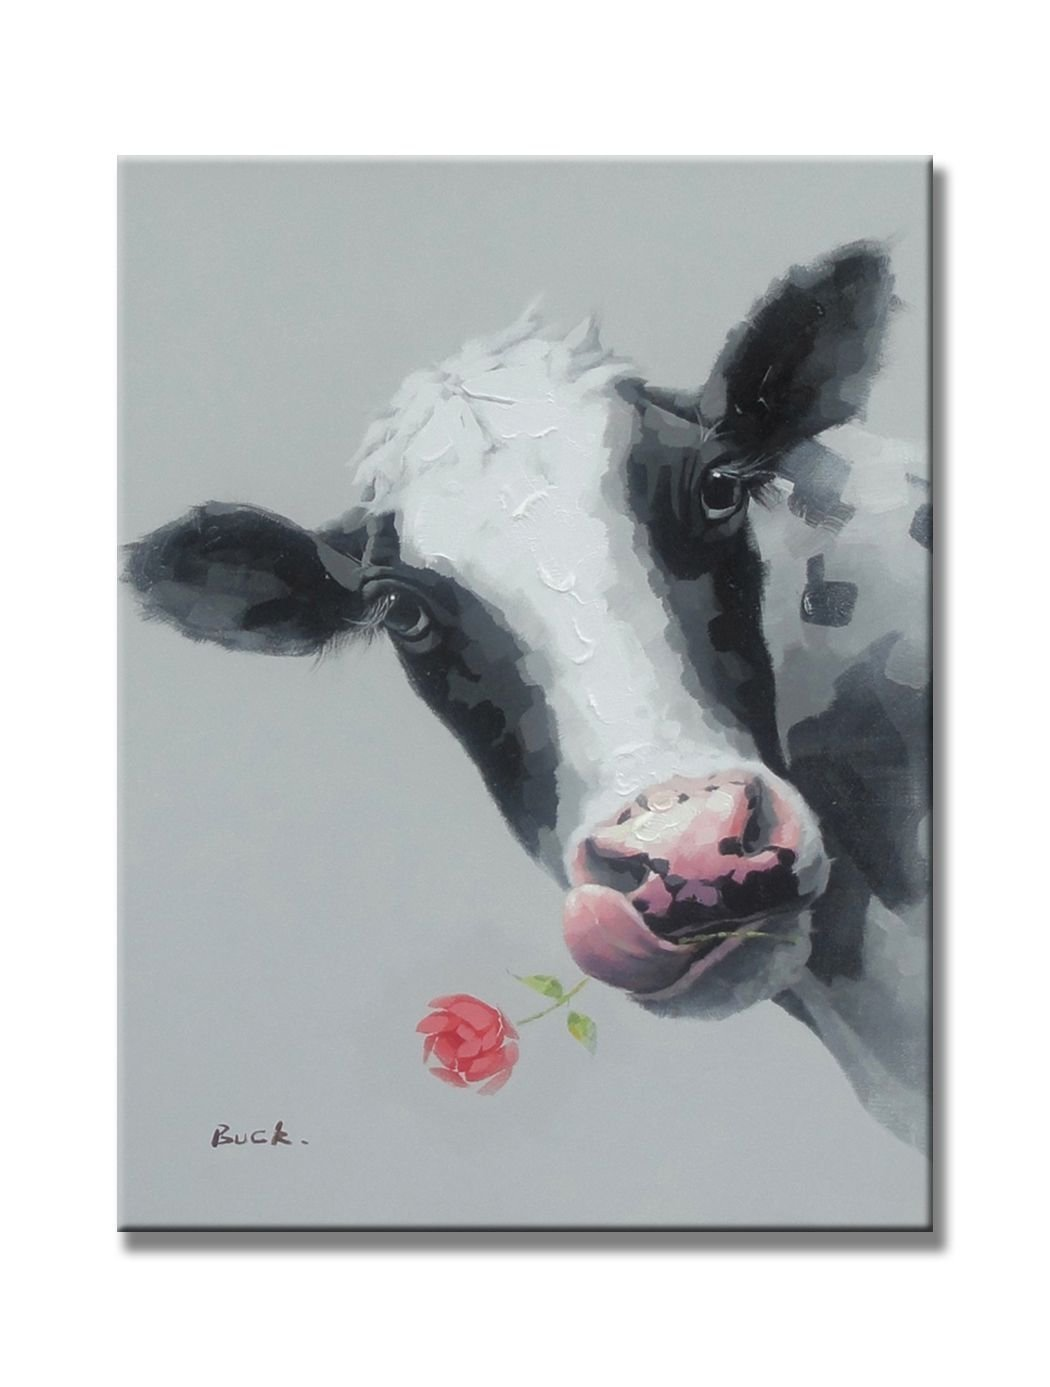 Cute Cow Animal Paintings 100% Handpainted Canvas Oil Paintings Wood Stretched Home Decor Ready To Hang 20x24'' (50x60cm)